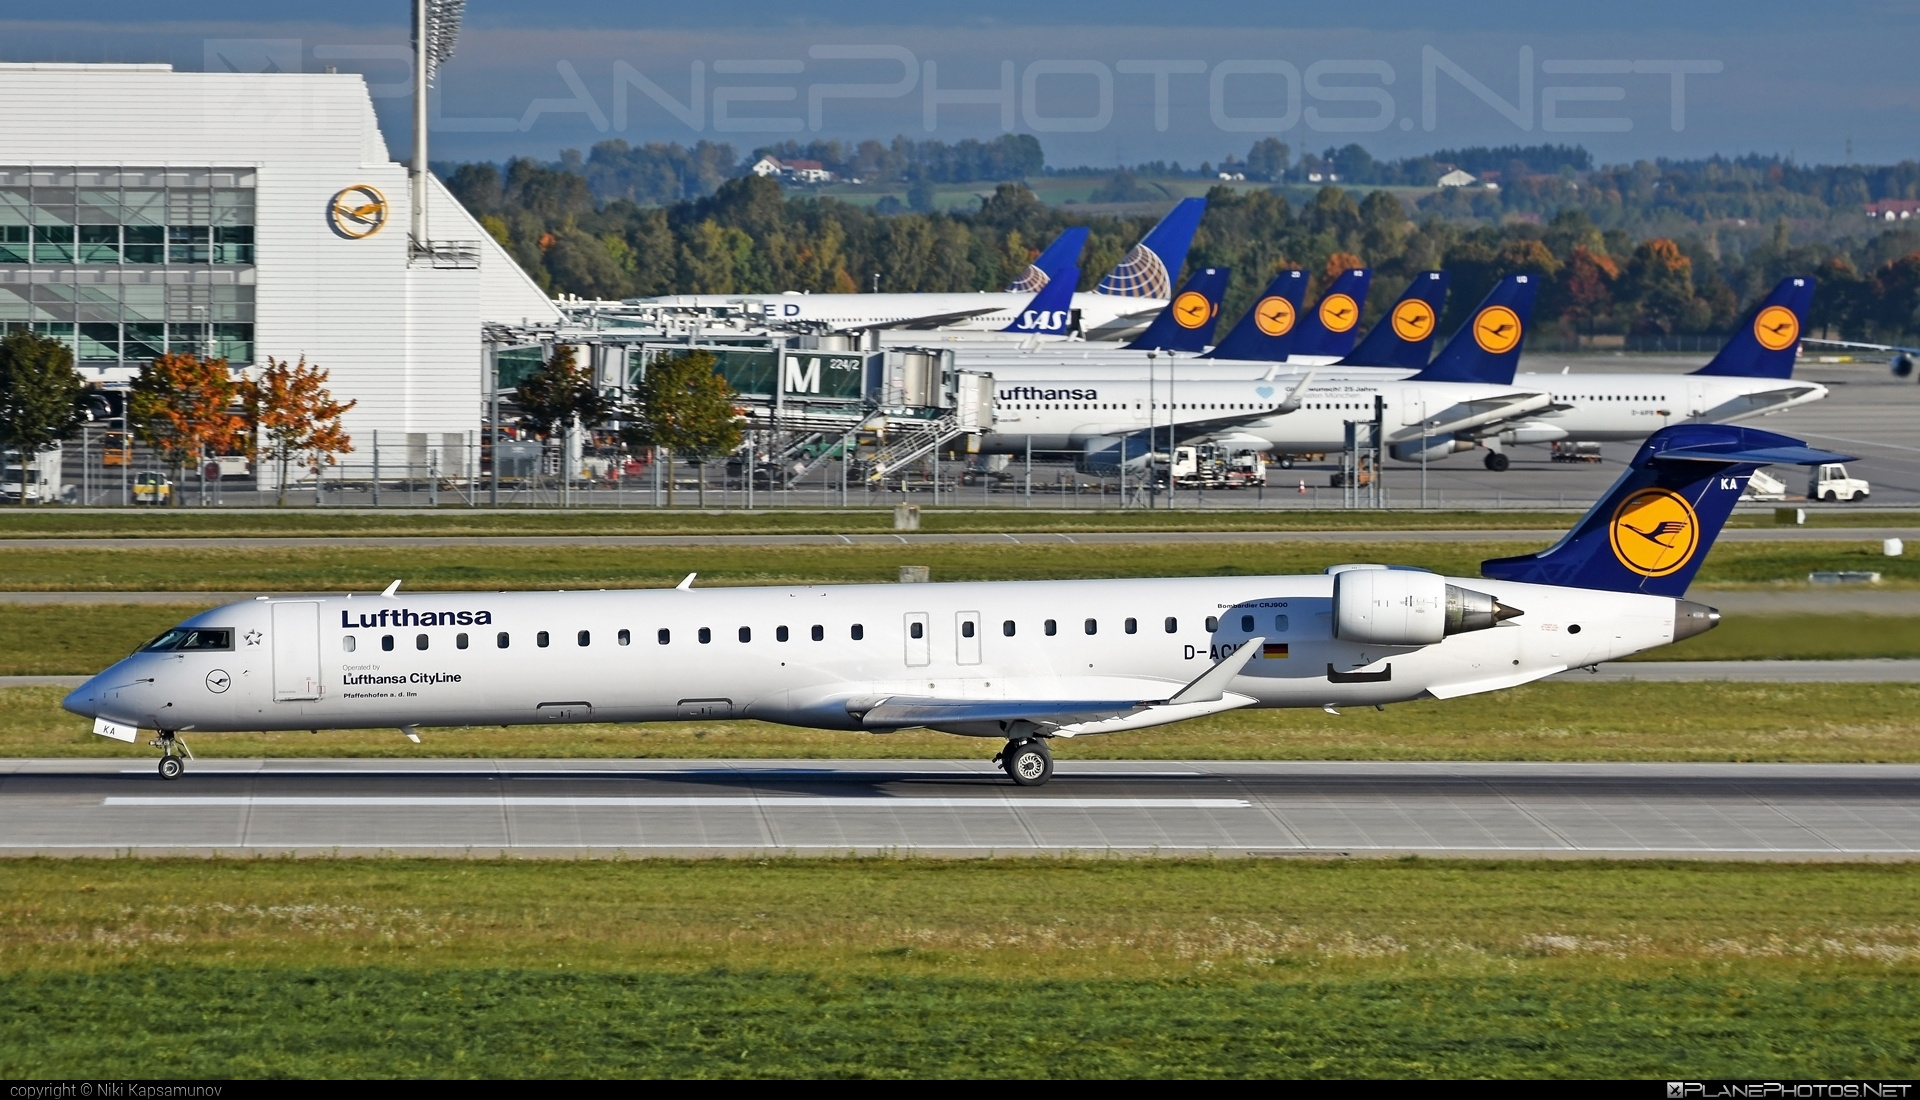 Bombardier CRJ900LR - D-ACKA operated by Lufthansa CityLine #bombardier #crj900 #crj900lr #lufthansa #lufthansacityline